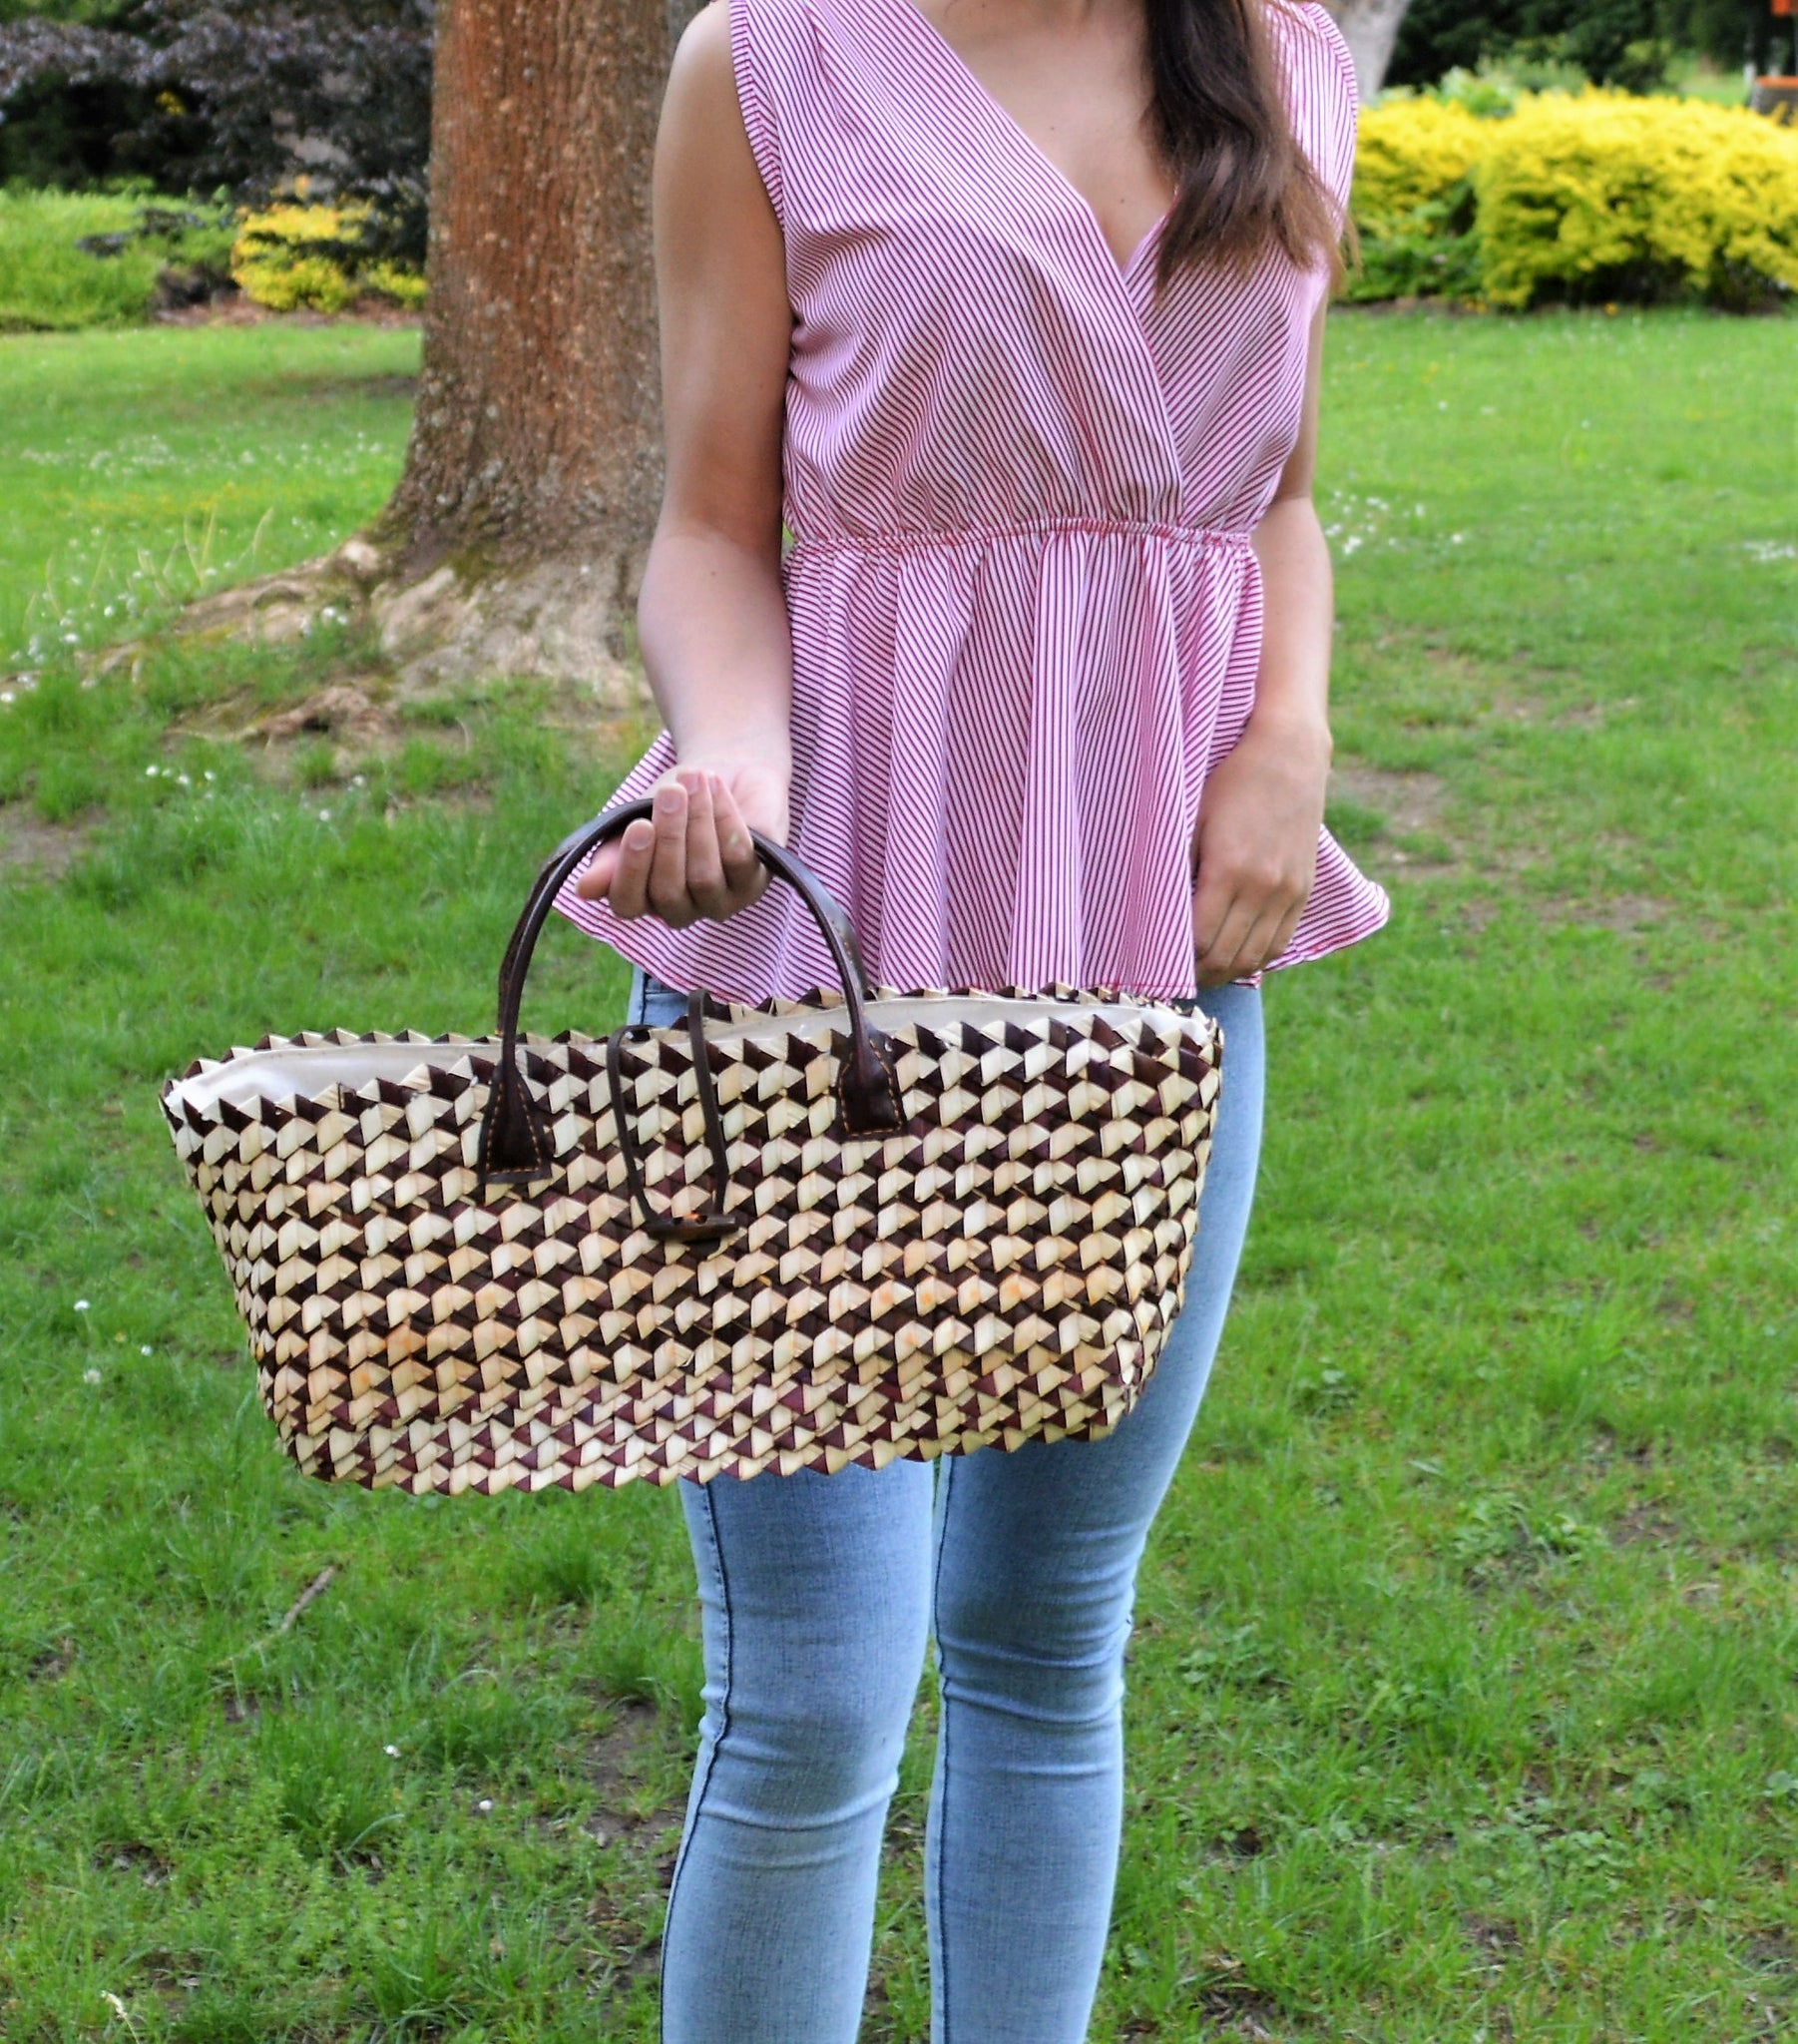 Brown & white straw handbag